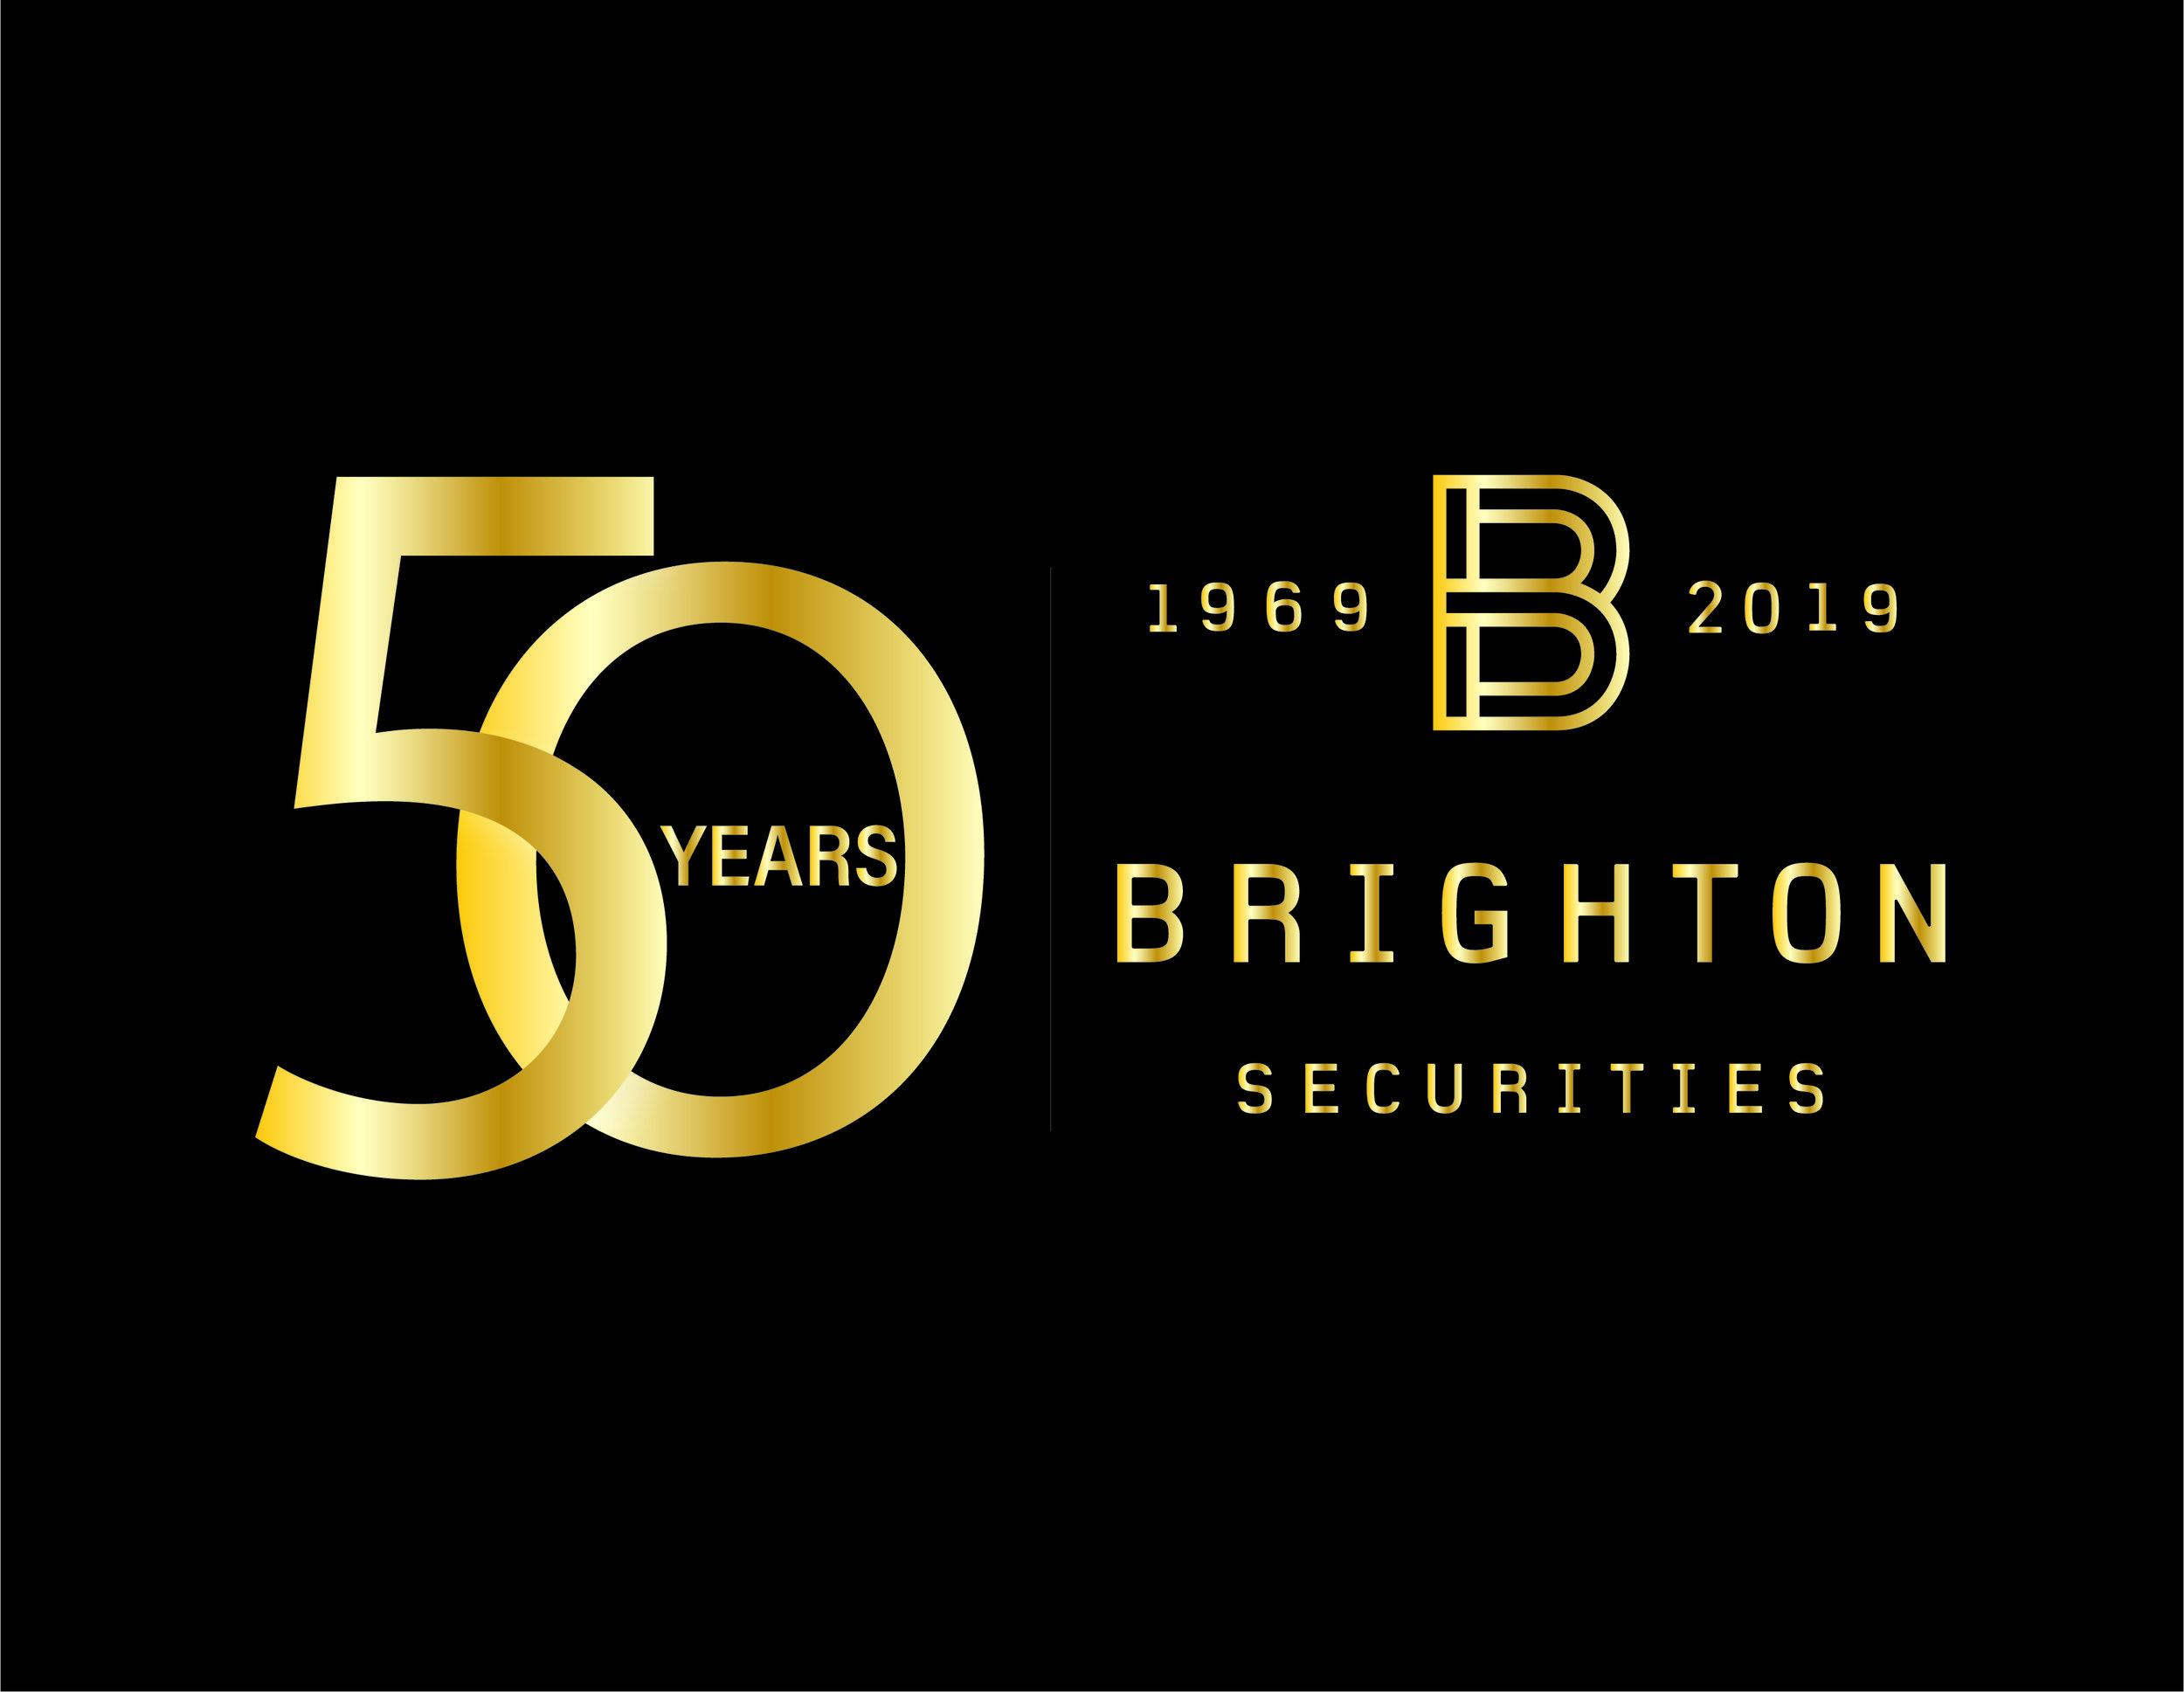 BrightonSecurities_50year.jpg